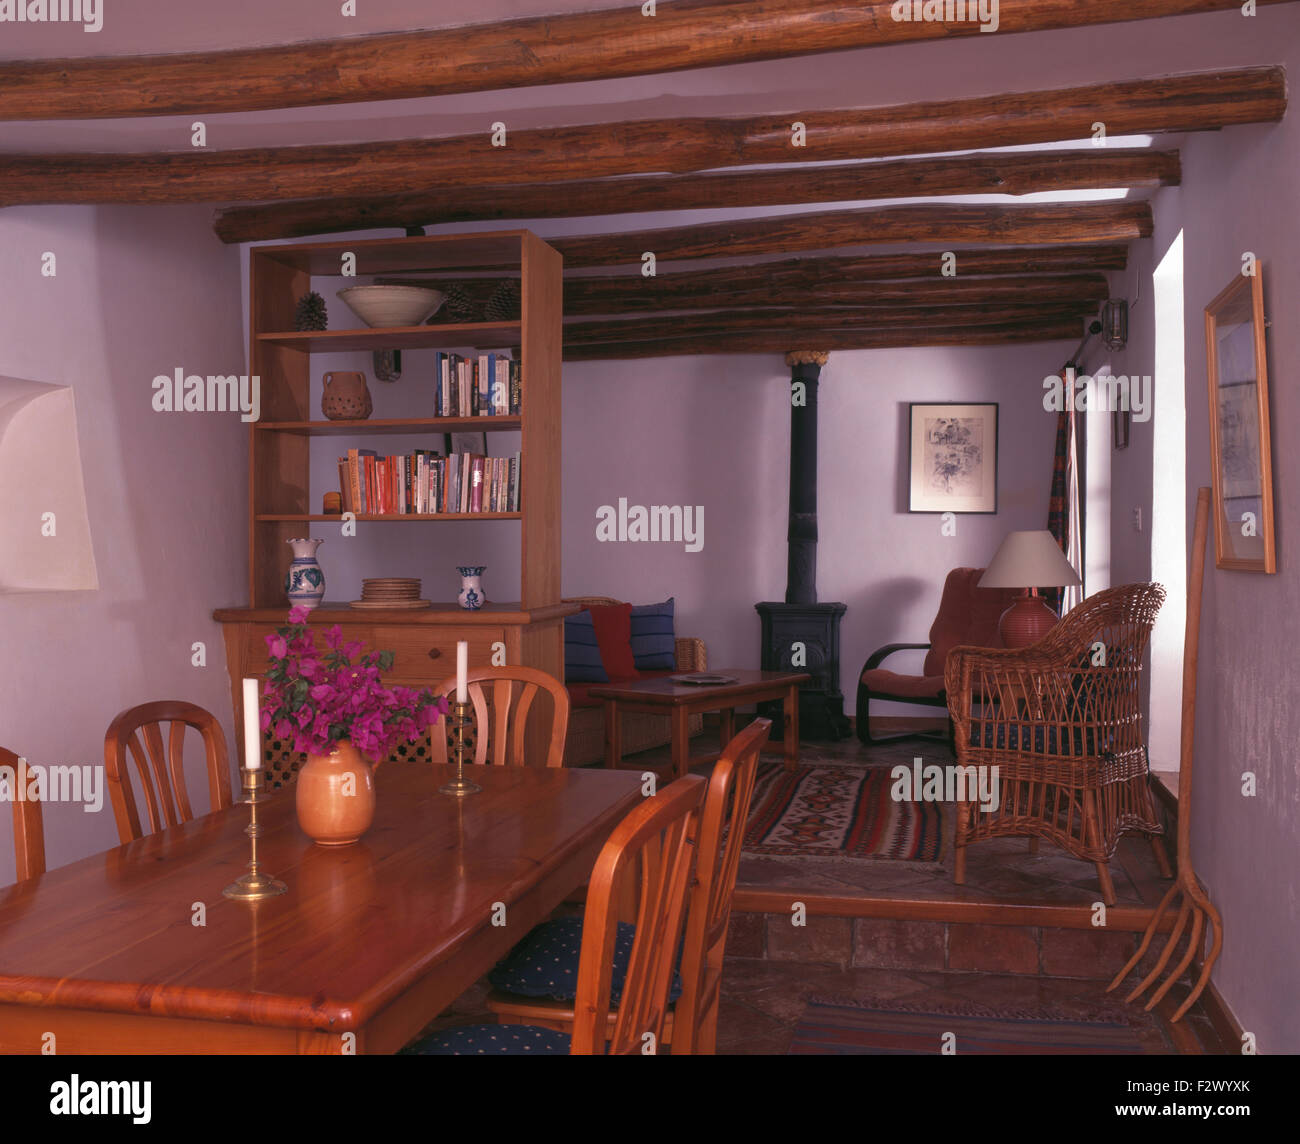 https://c8.alamy.com/comp/F2WYXK/wooden-chairs-and-table-in-spanish-cottage-dining-room-with-a-wood-F2WYXK.jpg